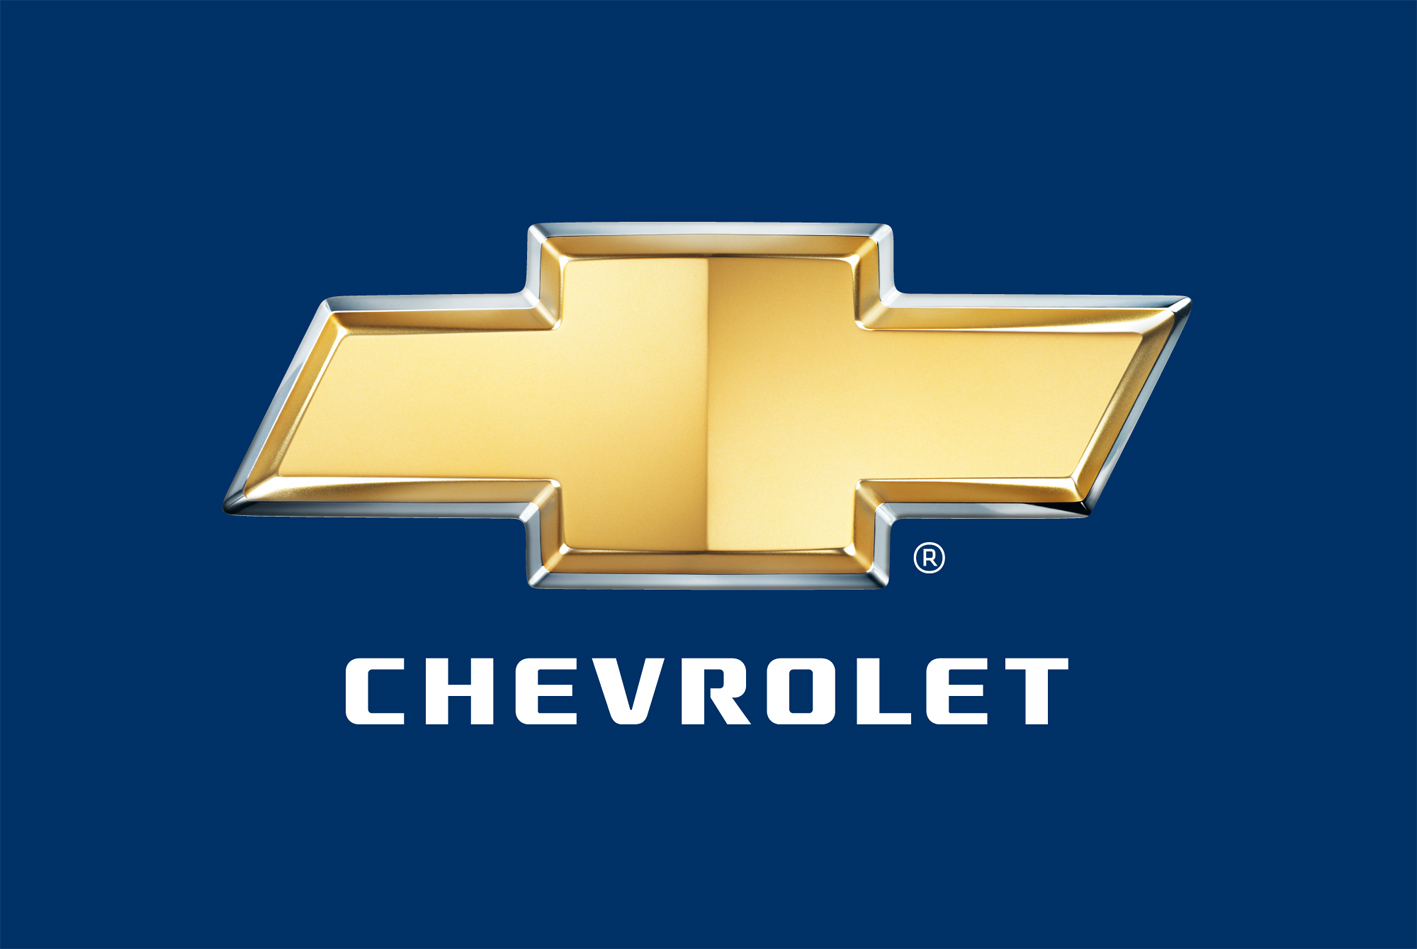 Chevy logo chevrolet car symbol meaning and history car brand chevrolet company logo buycottarizona